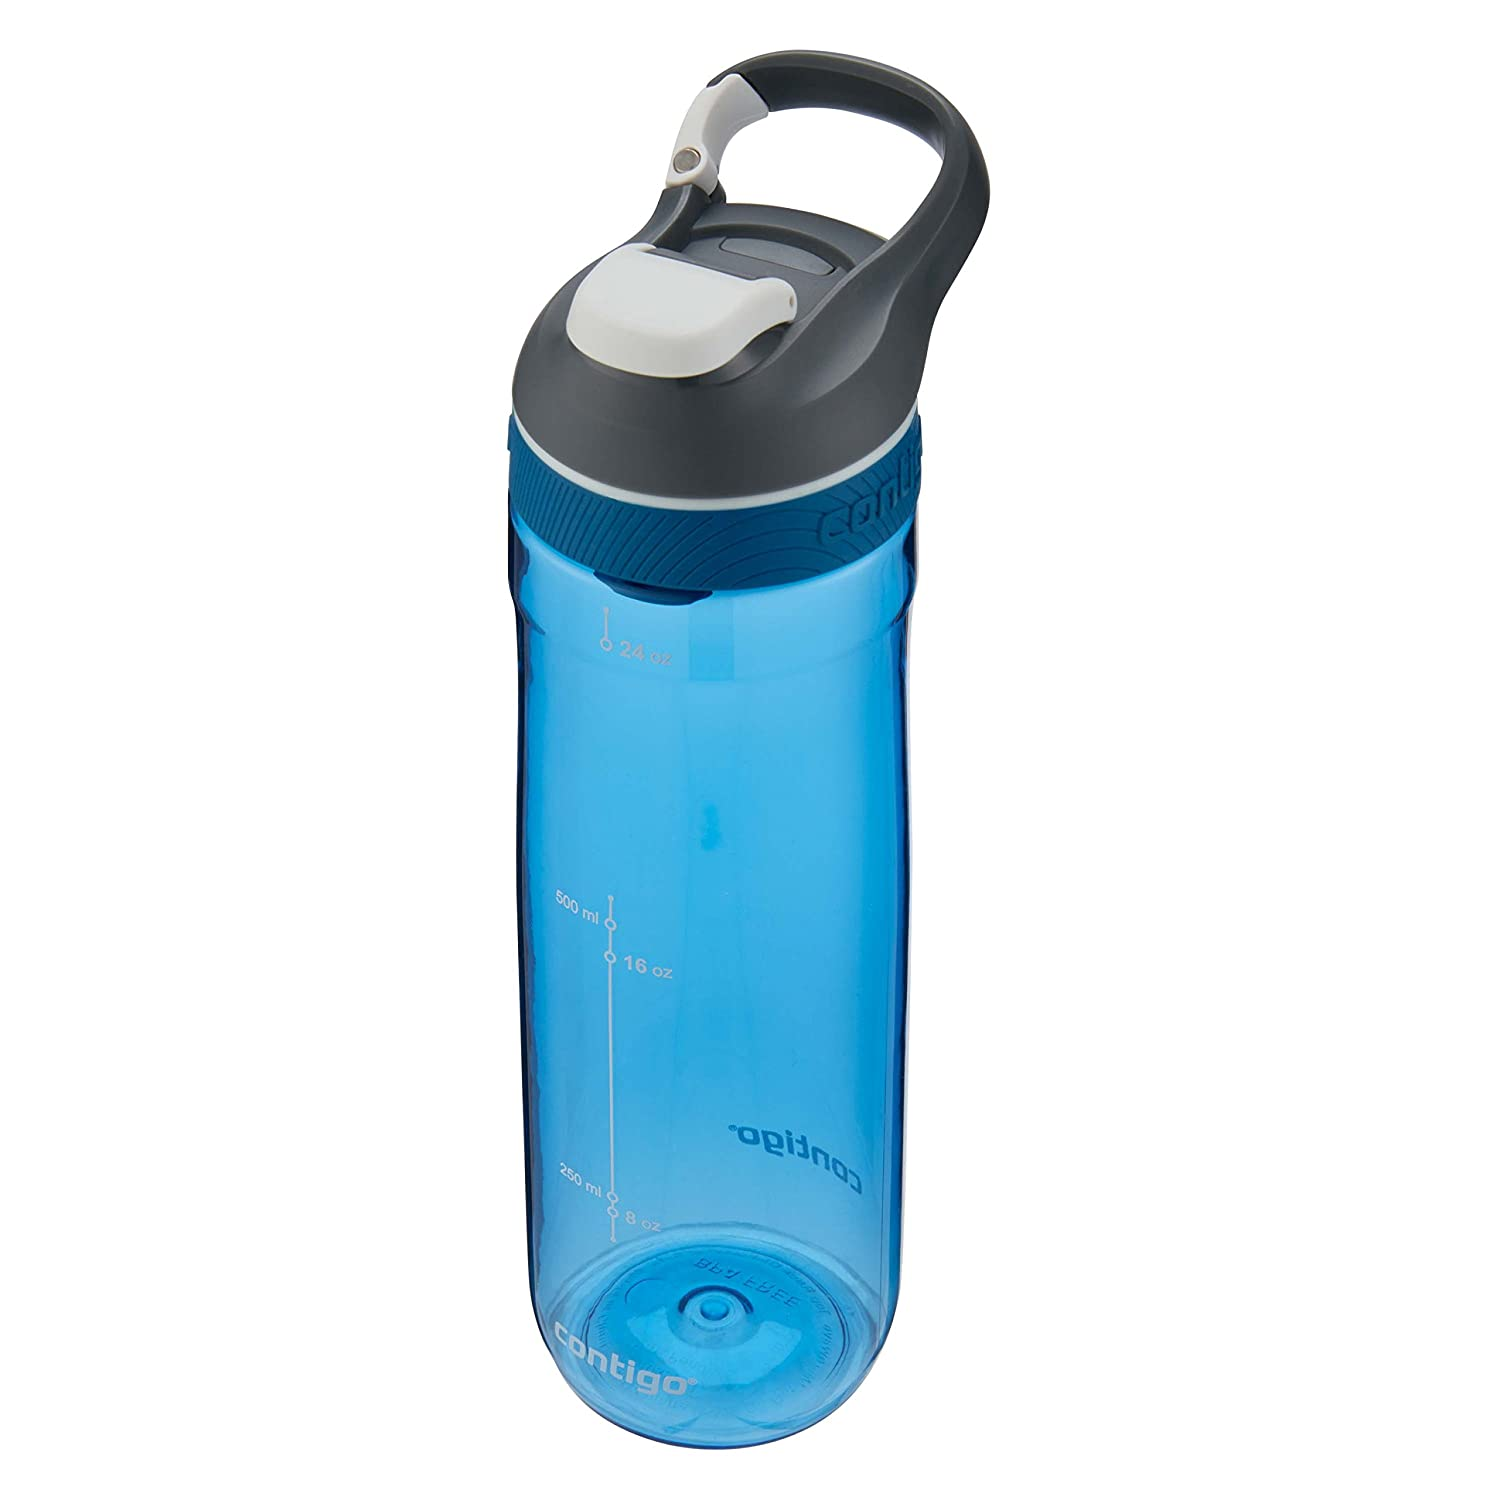 c03995953b Amazon.com: Contigo AUTOSEAL Cortland Water Bottle, 24 oz, Monaco: Kitchen  & Dining